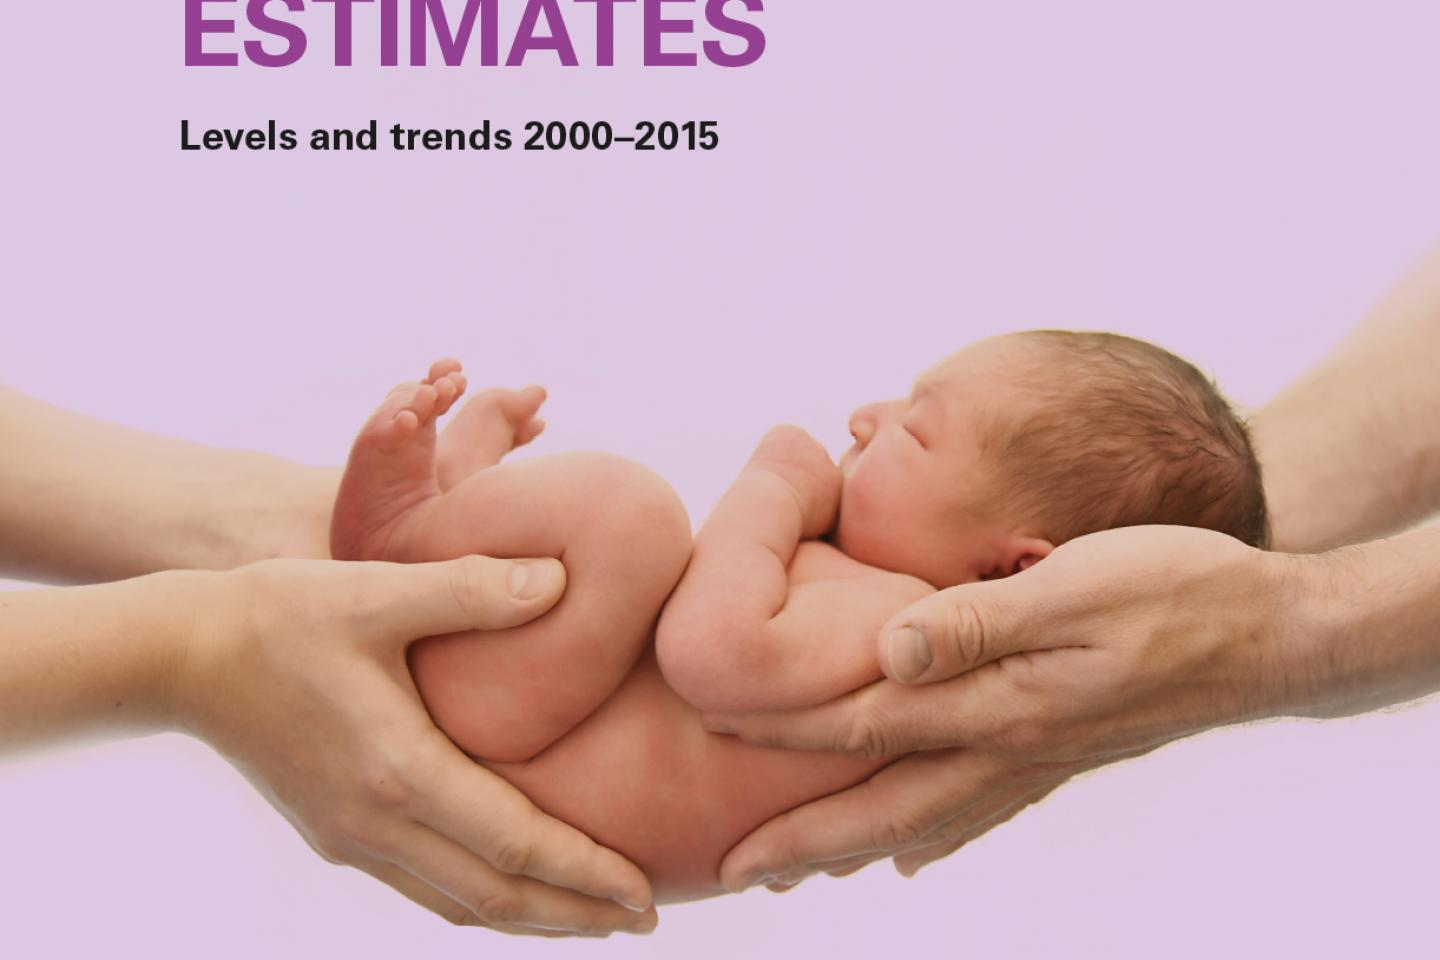 UNICEF-WHO Low birthweight estimates: Levels and trends 2000